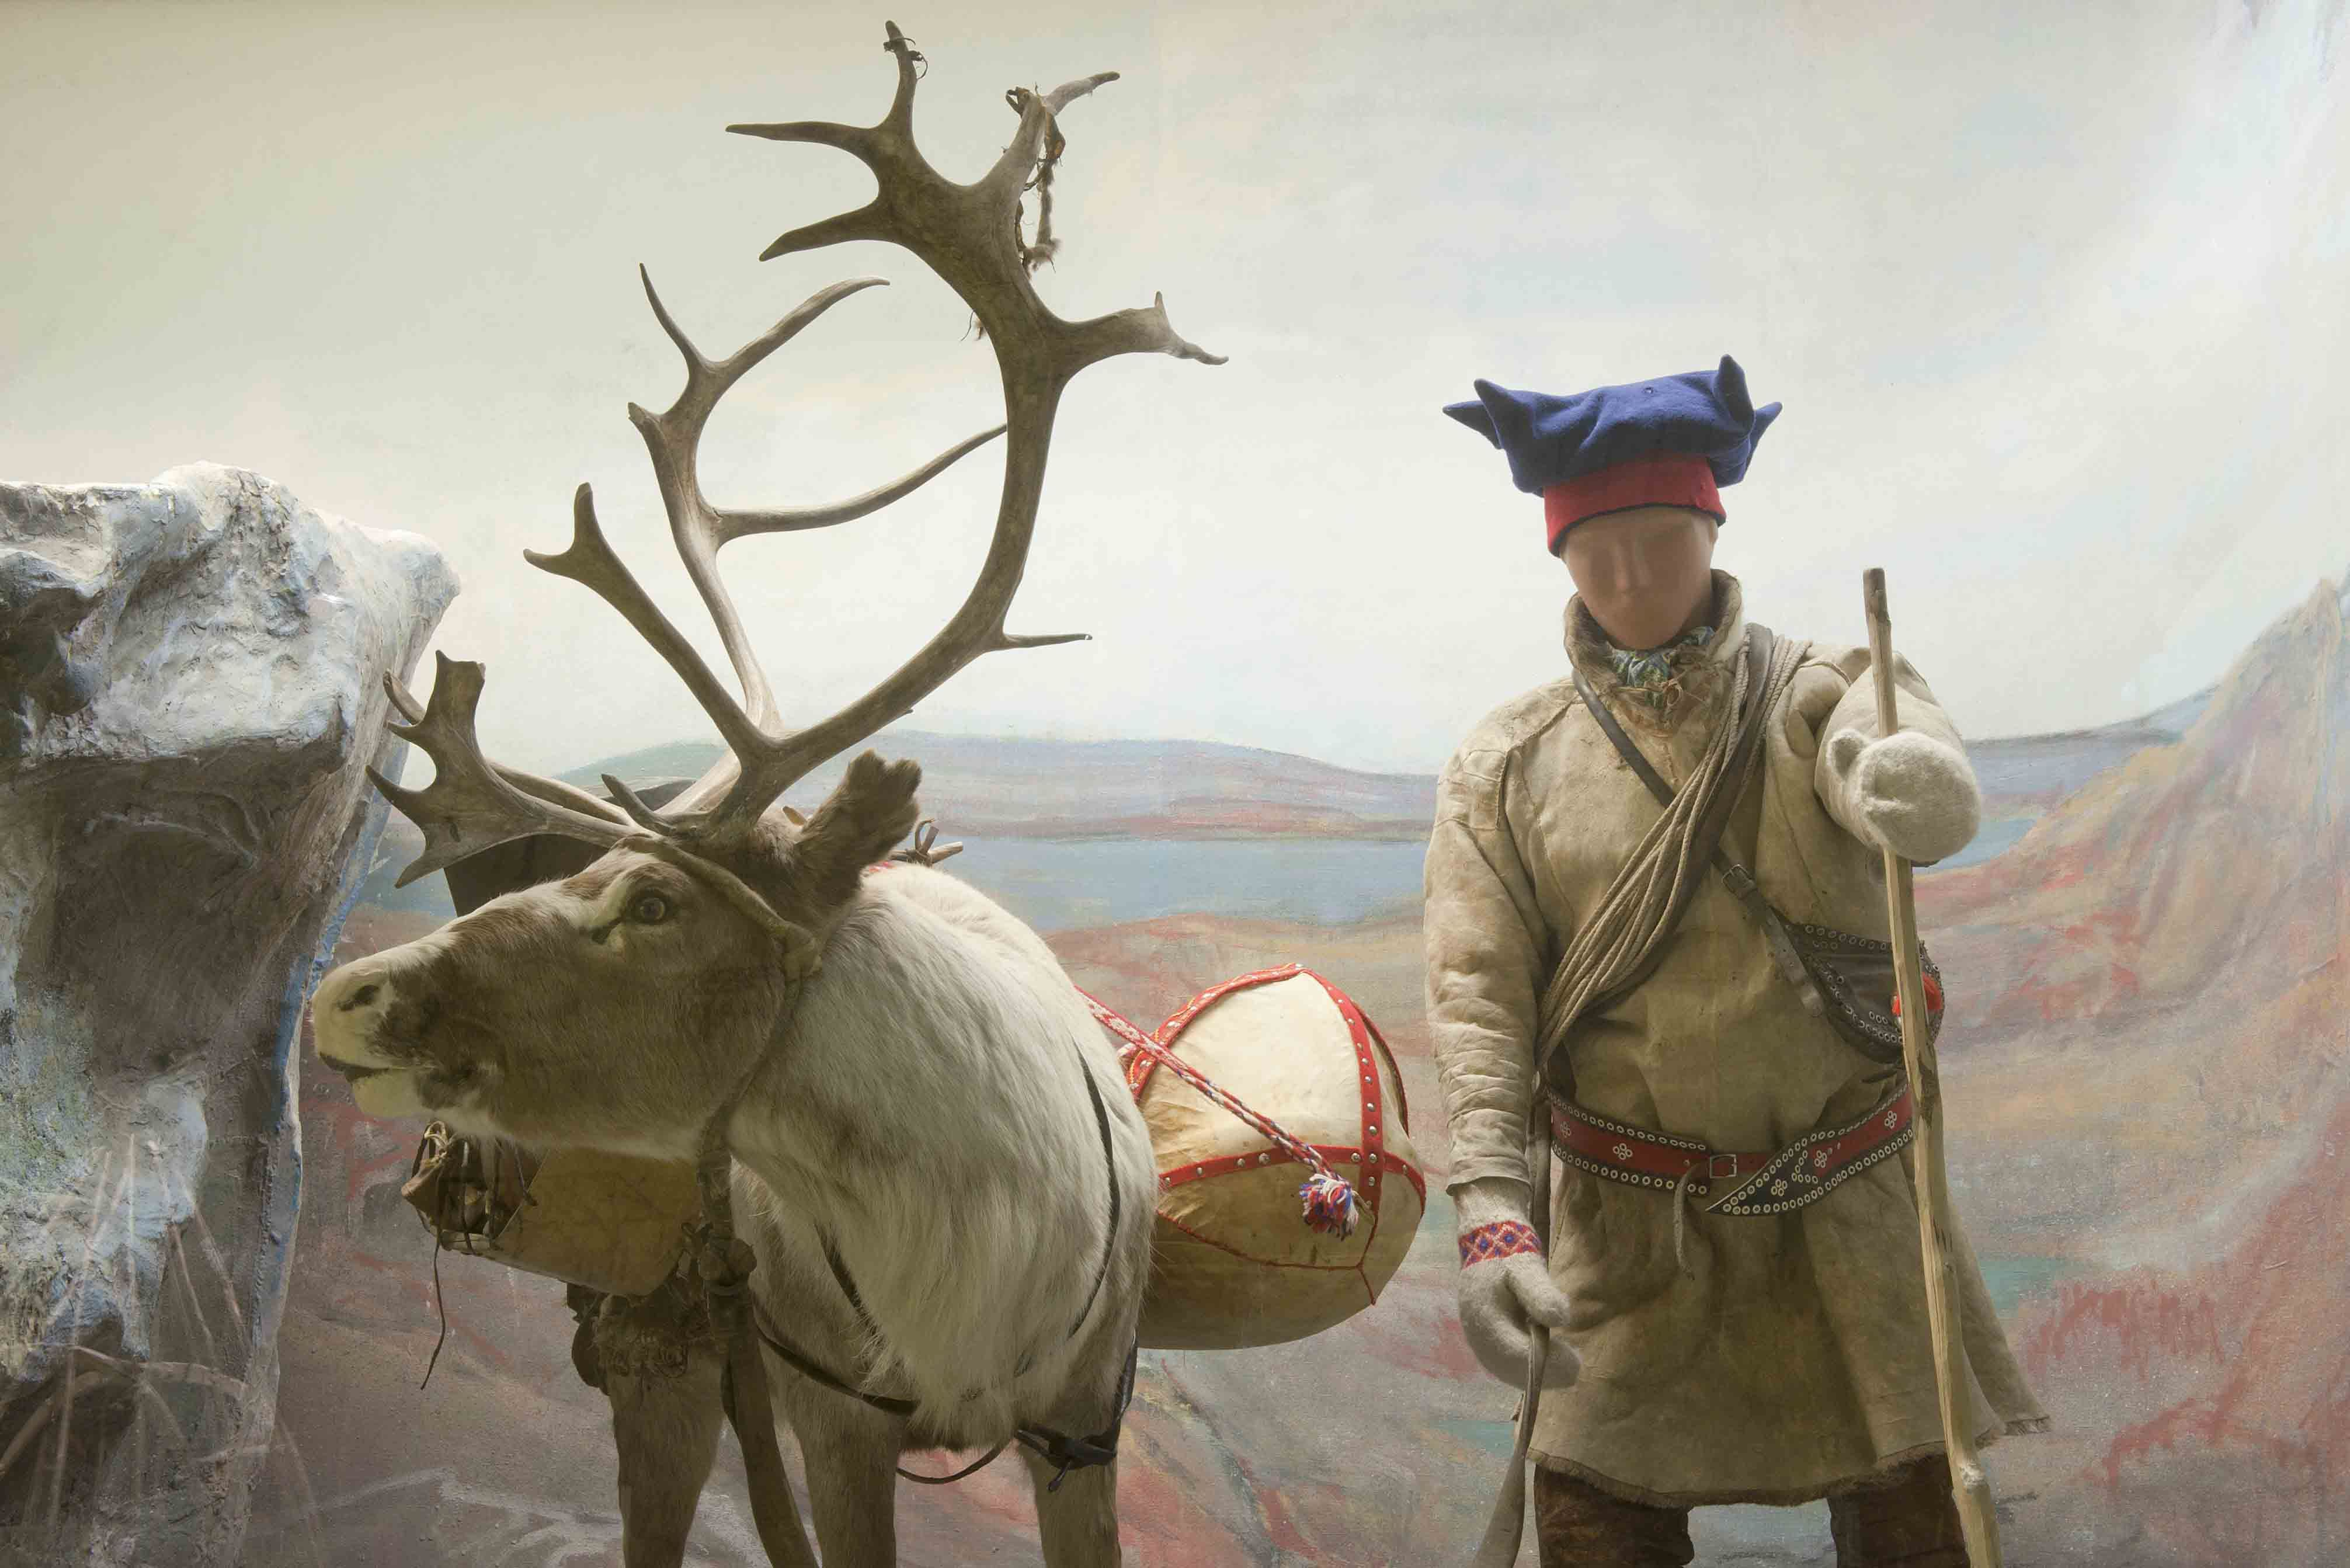 f4aad49e586bc Sami Culture and Camp Visit - Tromsø Arctic Reindeer Experience ...